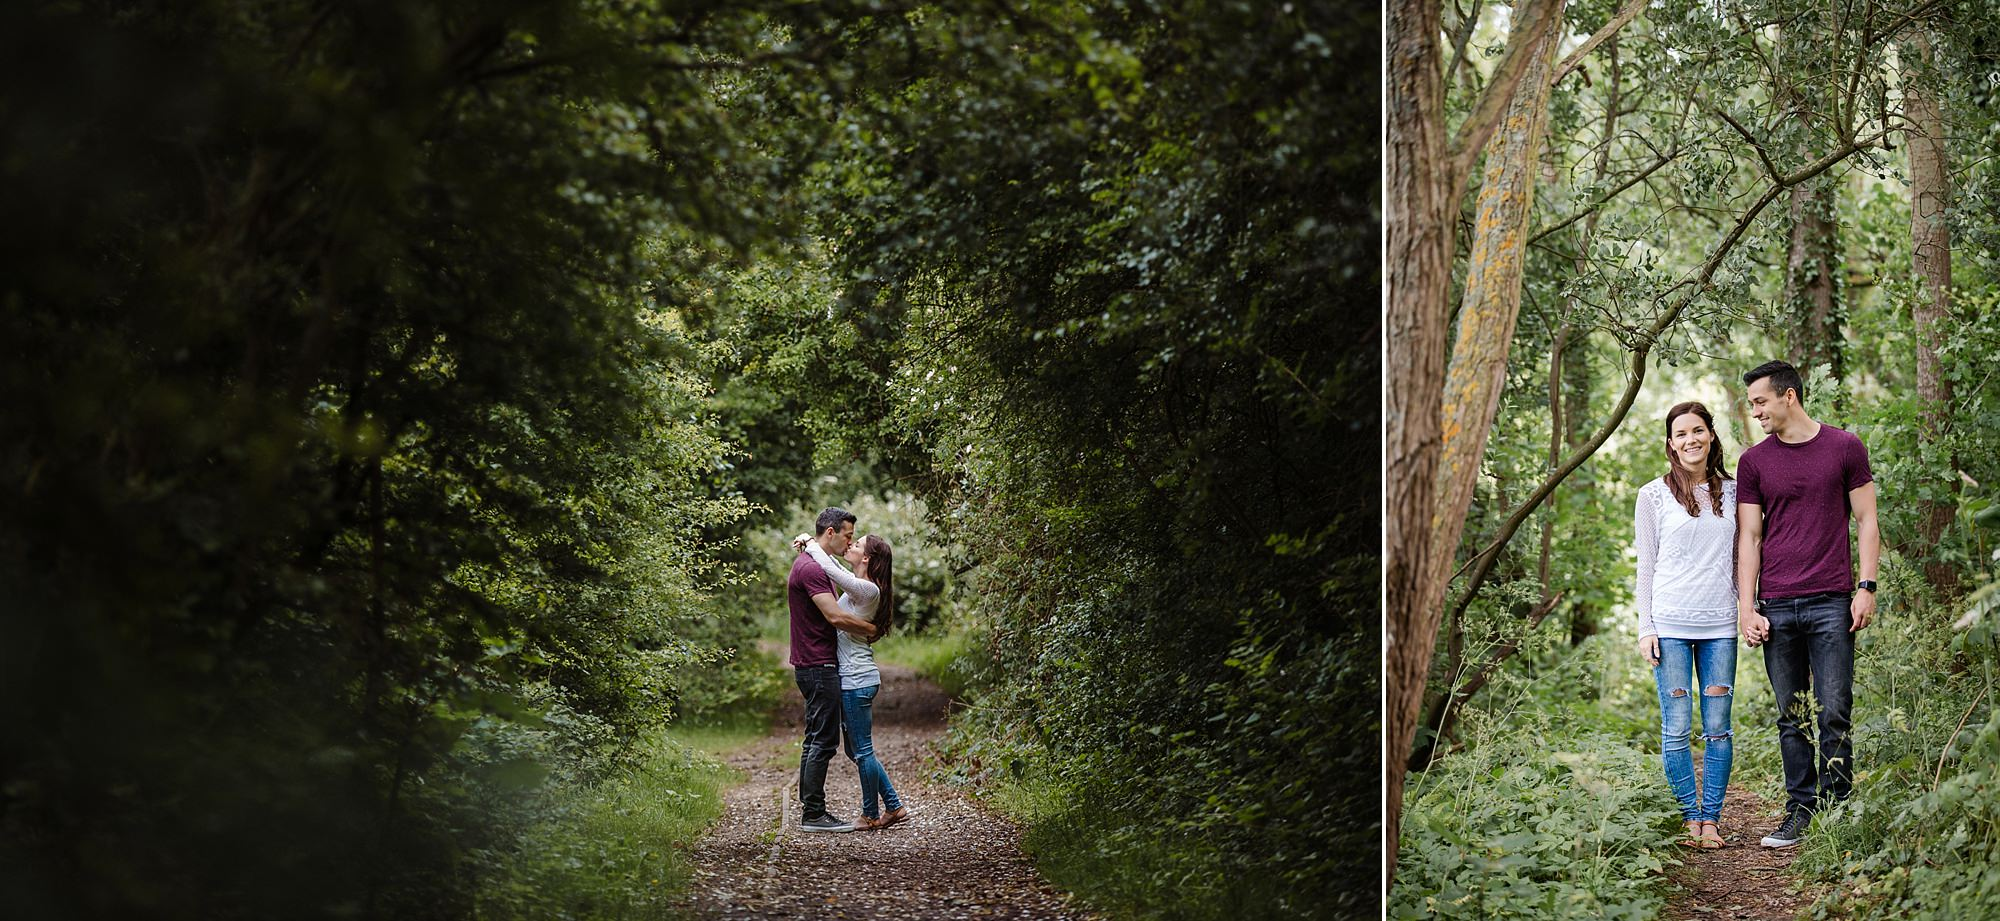 Countryside engagement photography couple kiss in a tree tunnel